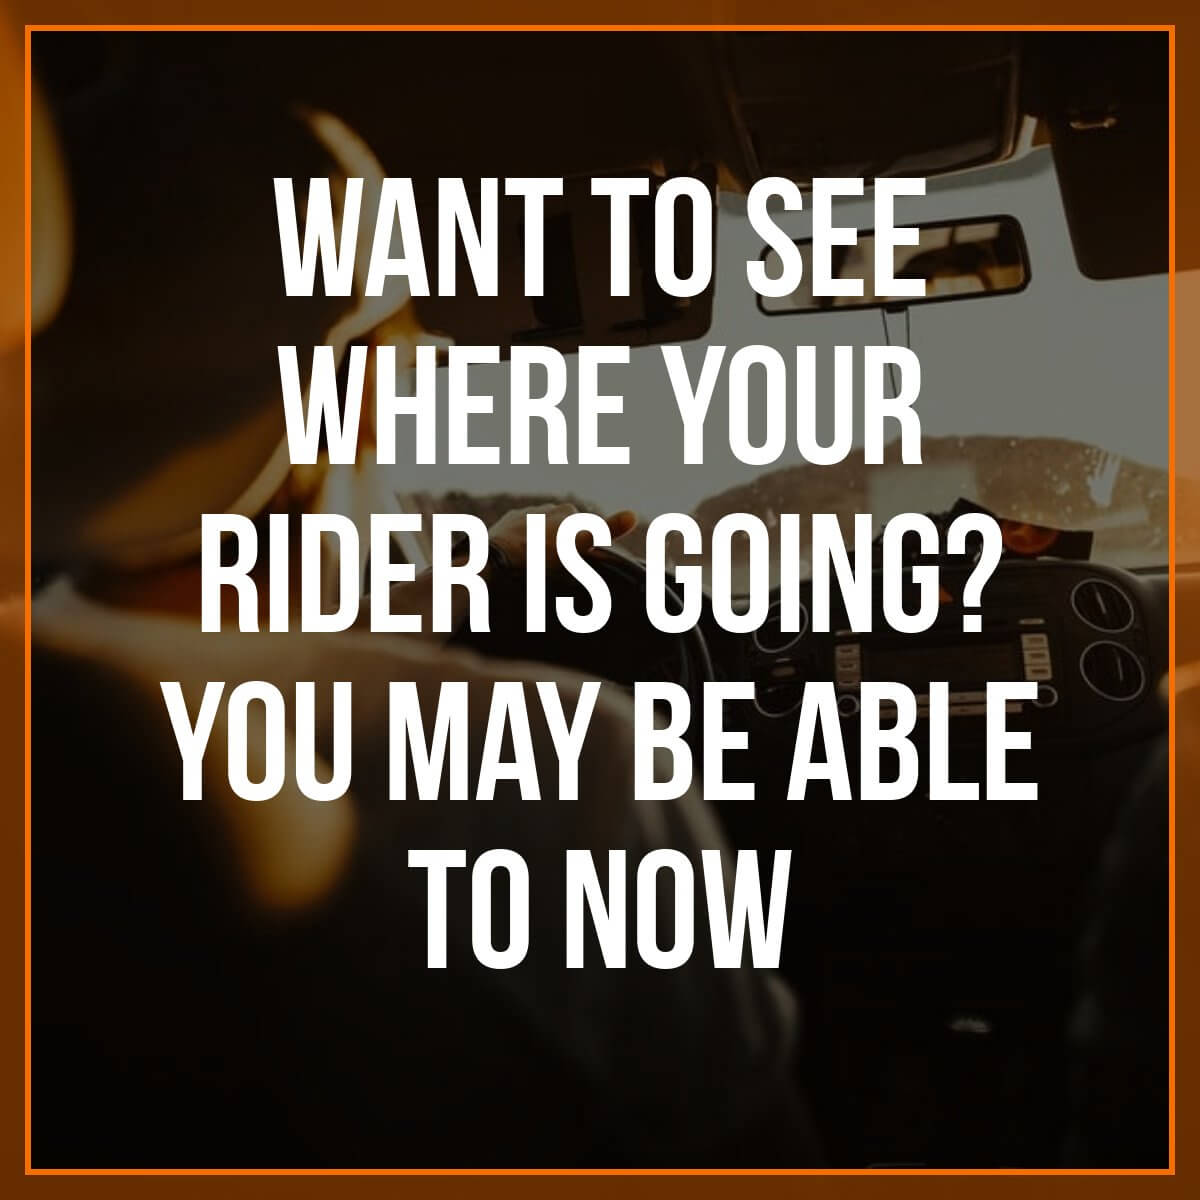 Want to See Where Your Rider is Going? You May Be Able to Now